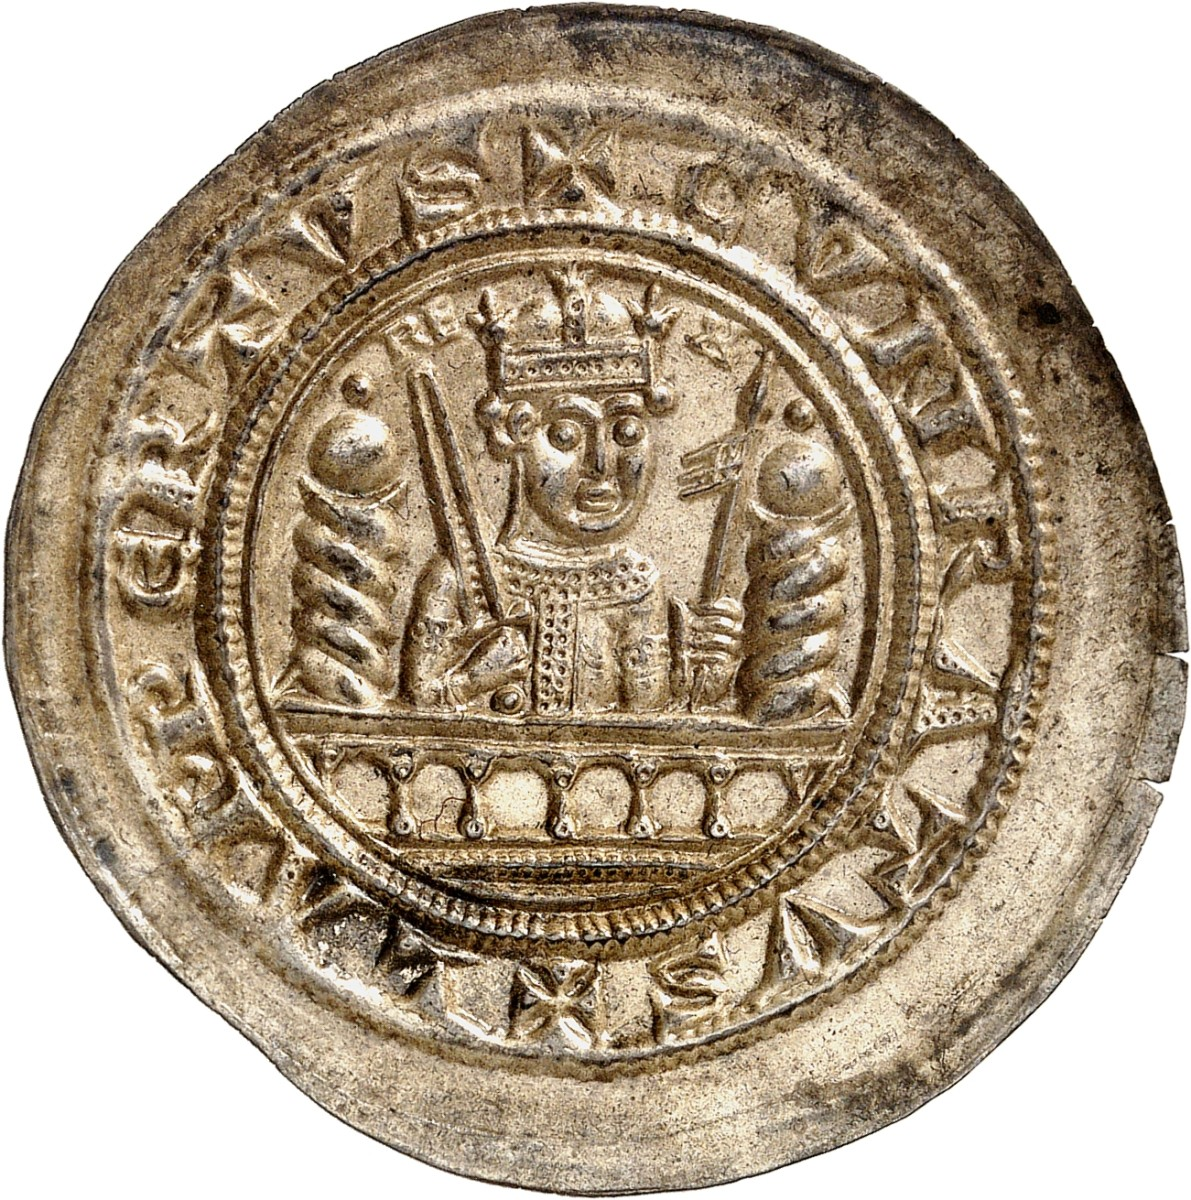 Lot 5811 in Auction 354 brings us this unique bracteates of Mühlhausen / Thuringia struck under Conrad III, 1138-1152. It's estimated at about $35,500, but who really knows what it may bring in such gorgeous FDC condition.